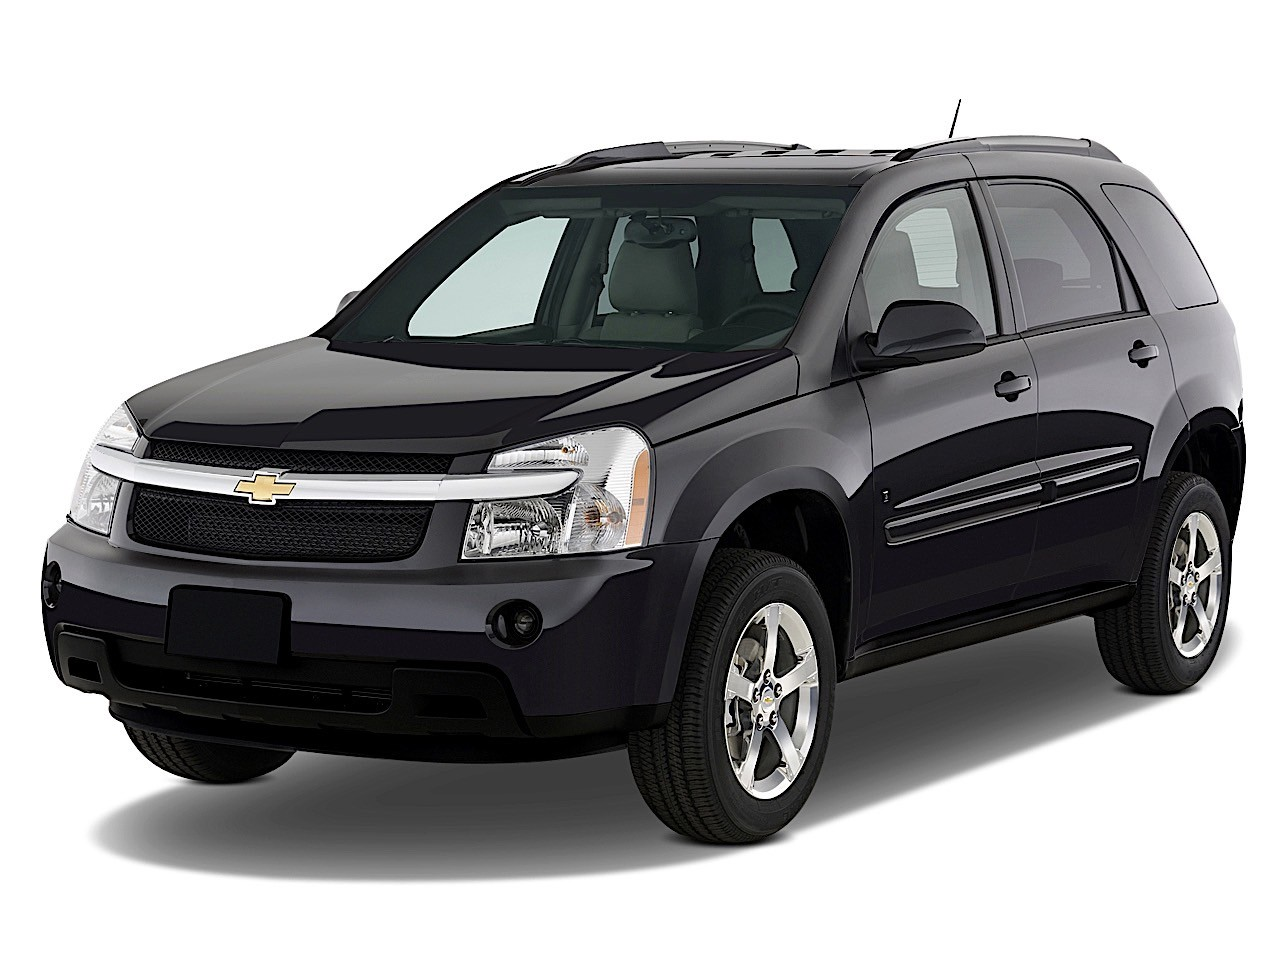 2006 chevrolet equinox owners manual pdf